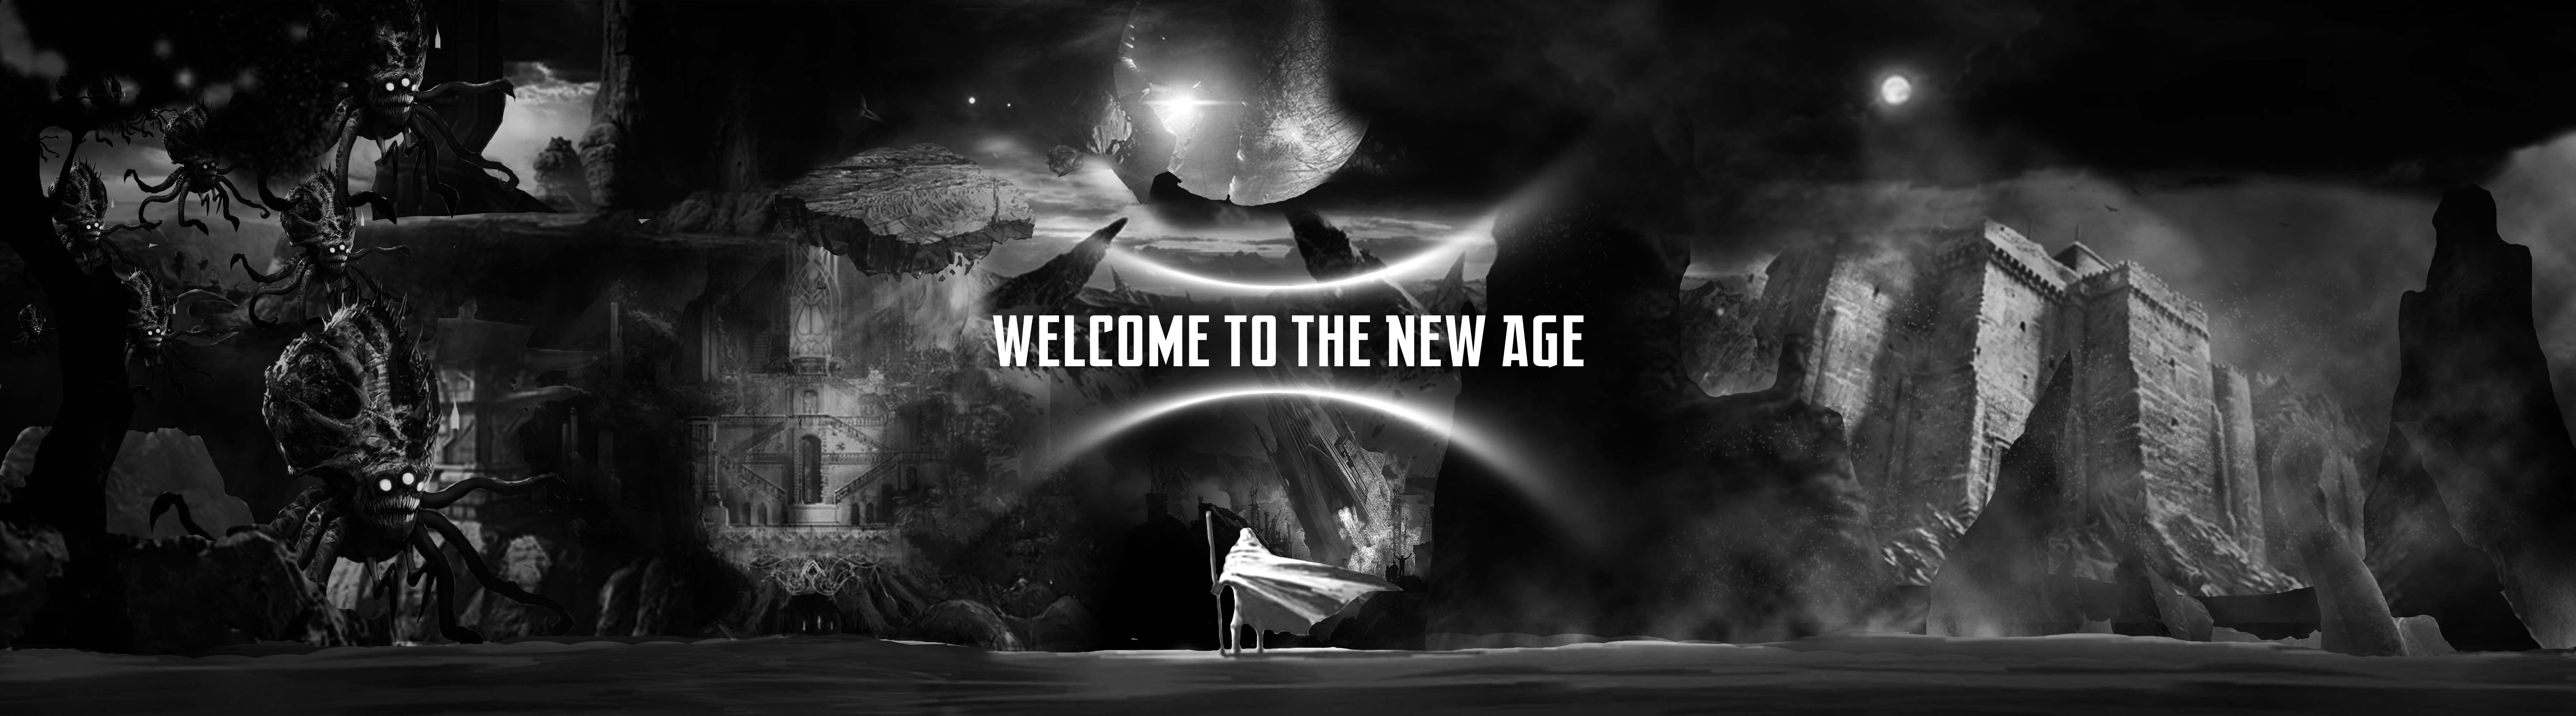 New-age music